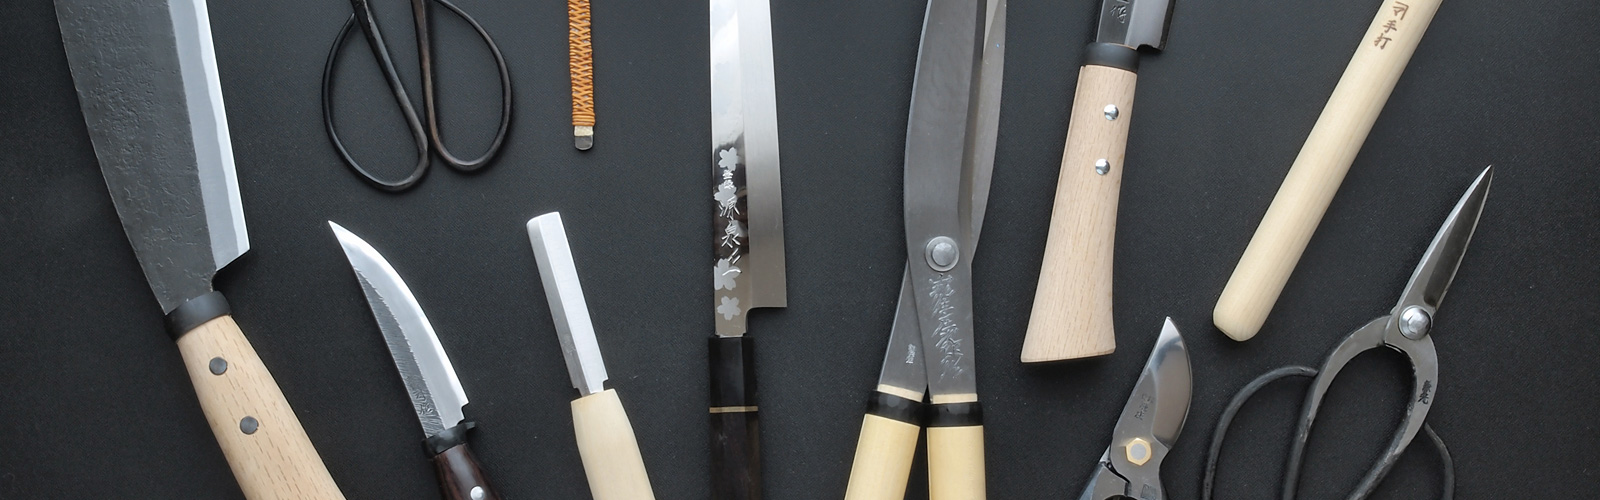 Japanese kitchen knives and pruner, secateurs, edged tools Blacksmith's items.